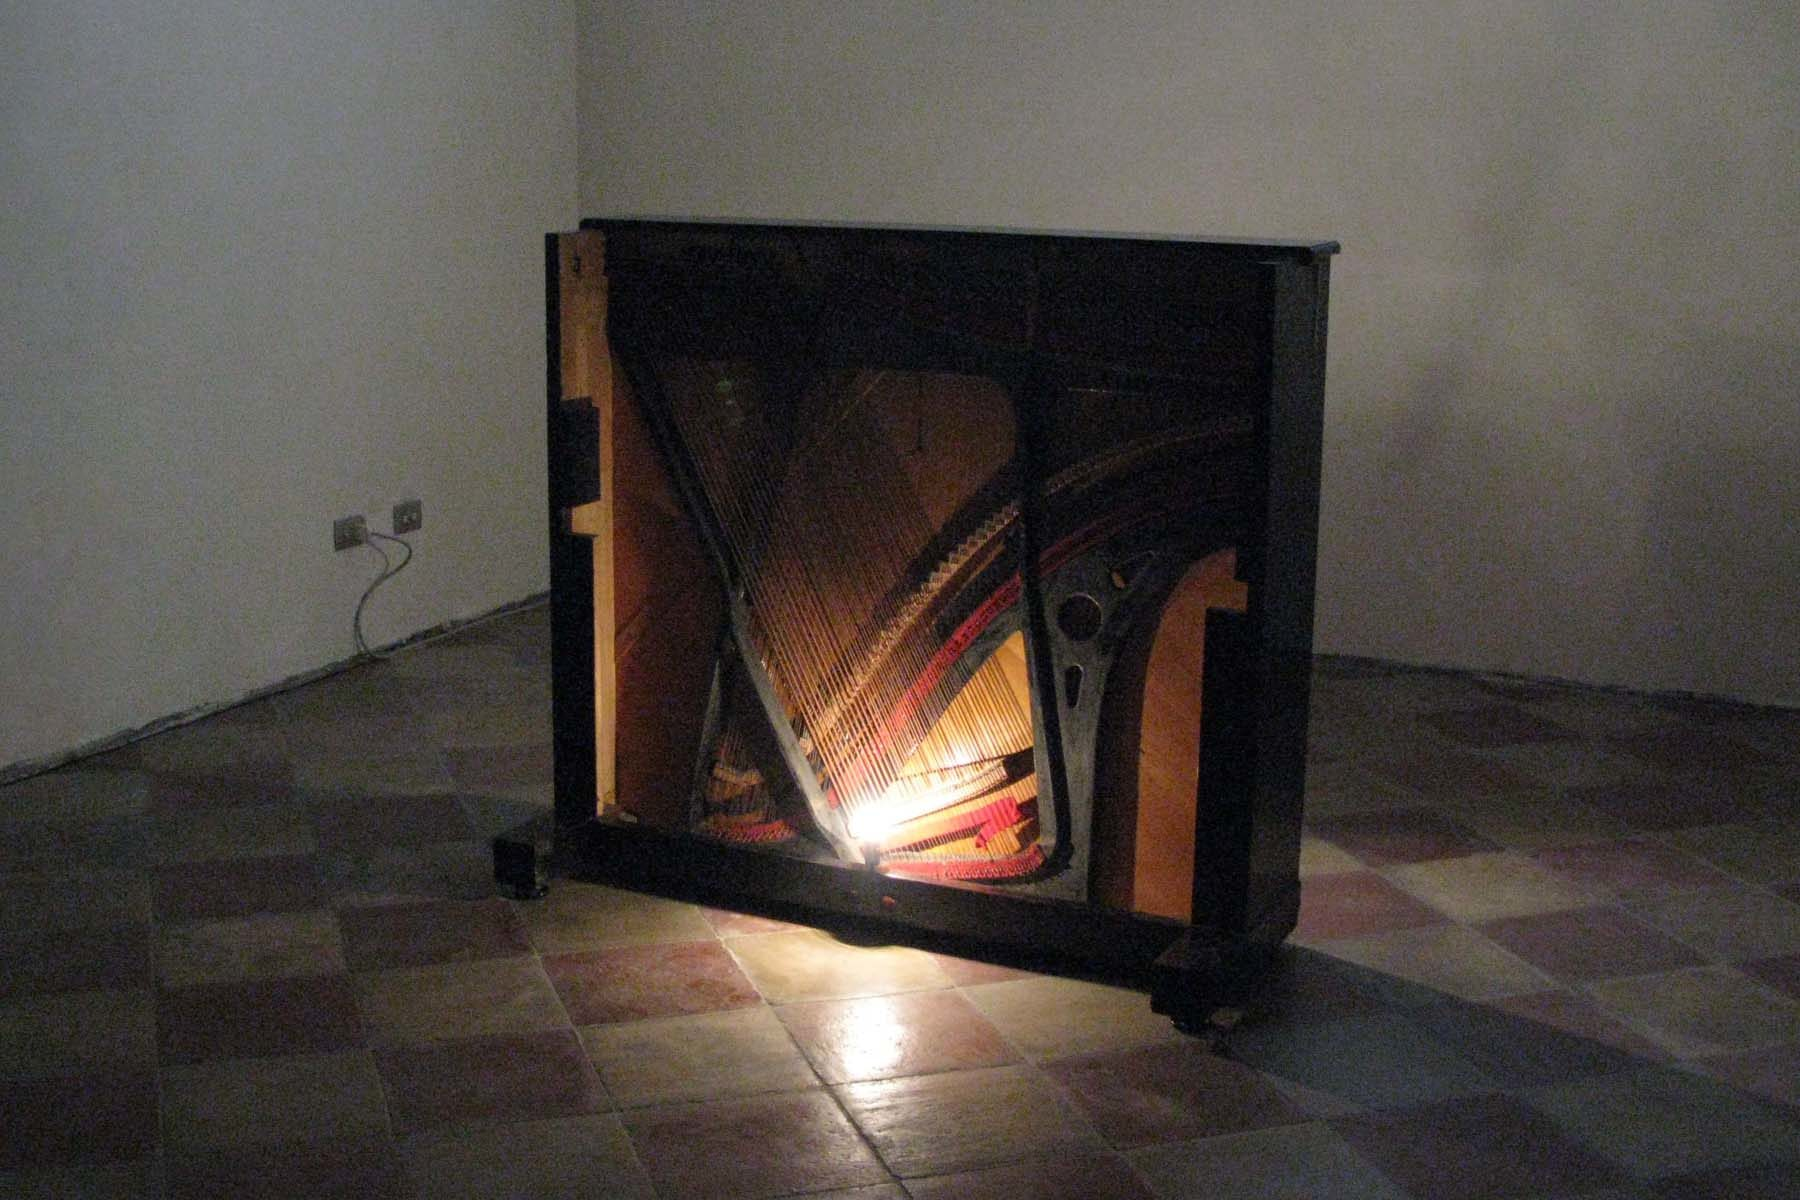 Jacopo Mazzonelli, Organico, 2010, mixed media, installation view